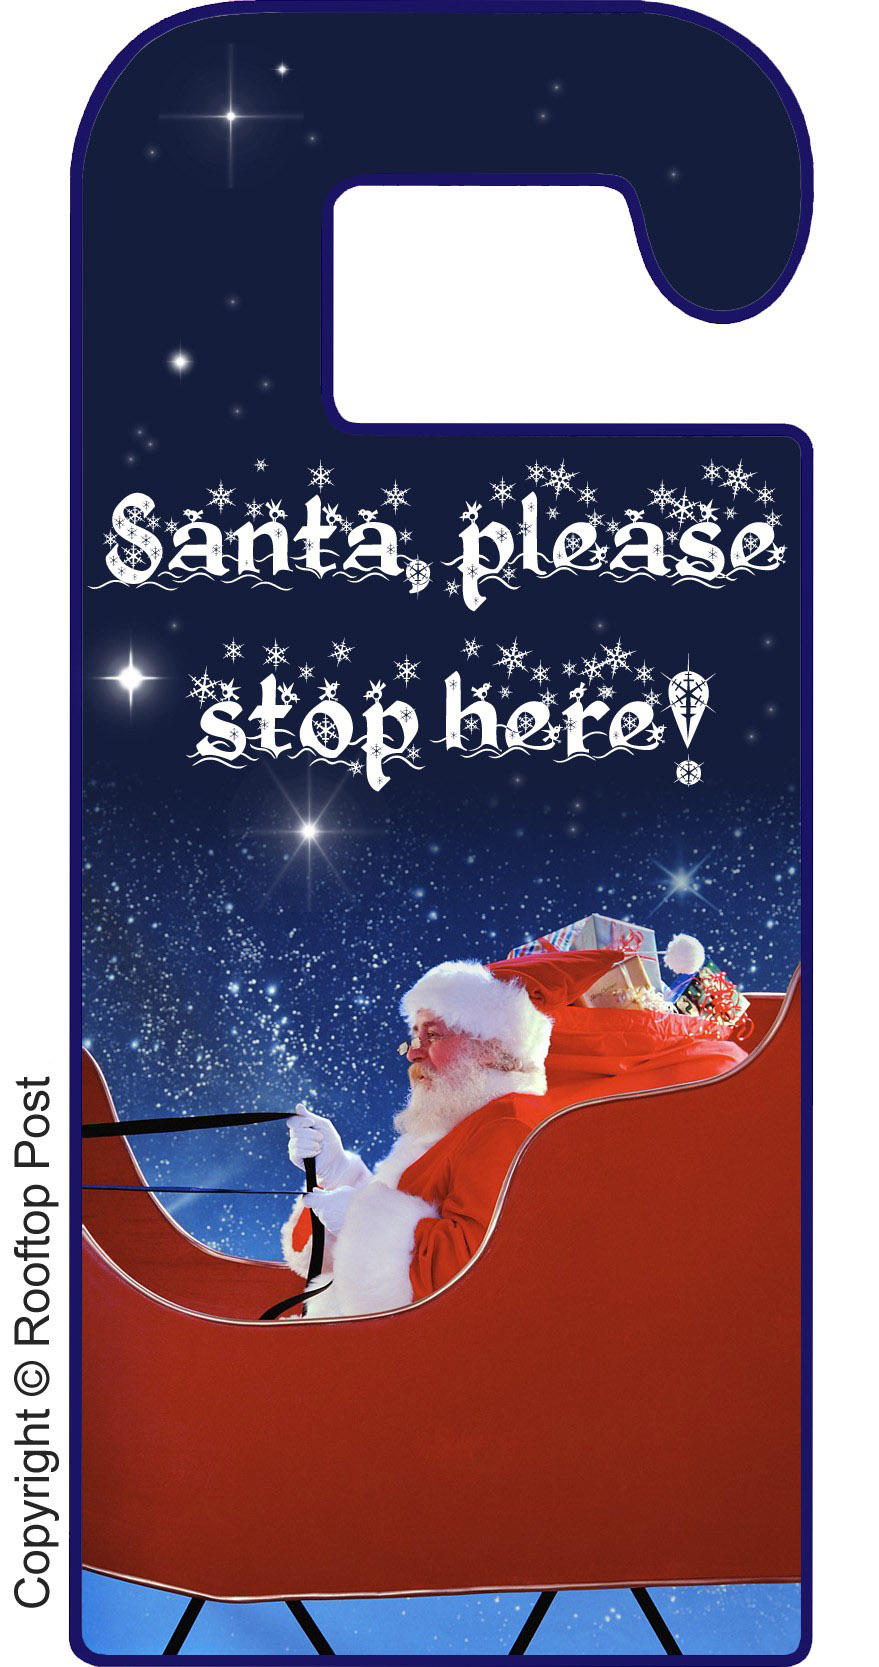 Printable door hanger for Christmas Eve asking Santa to please stop here